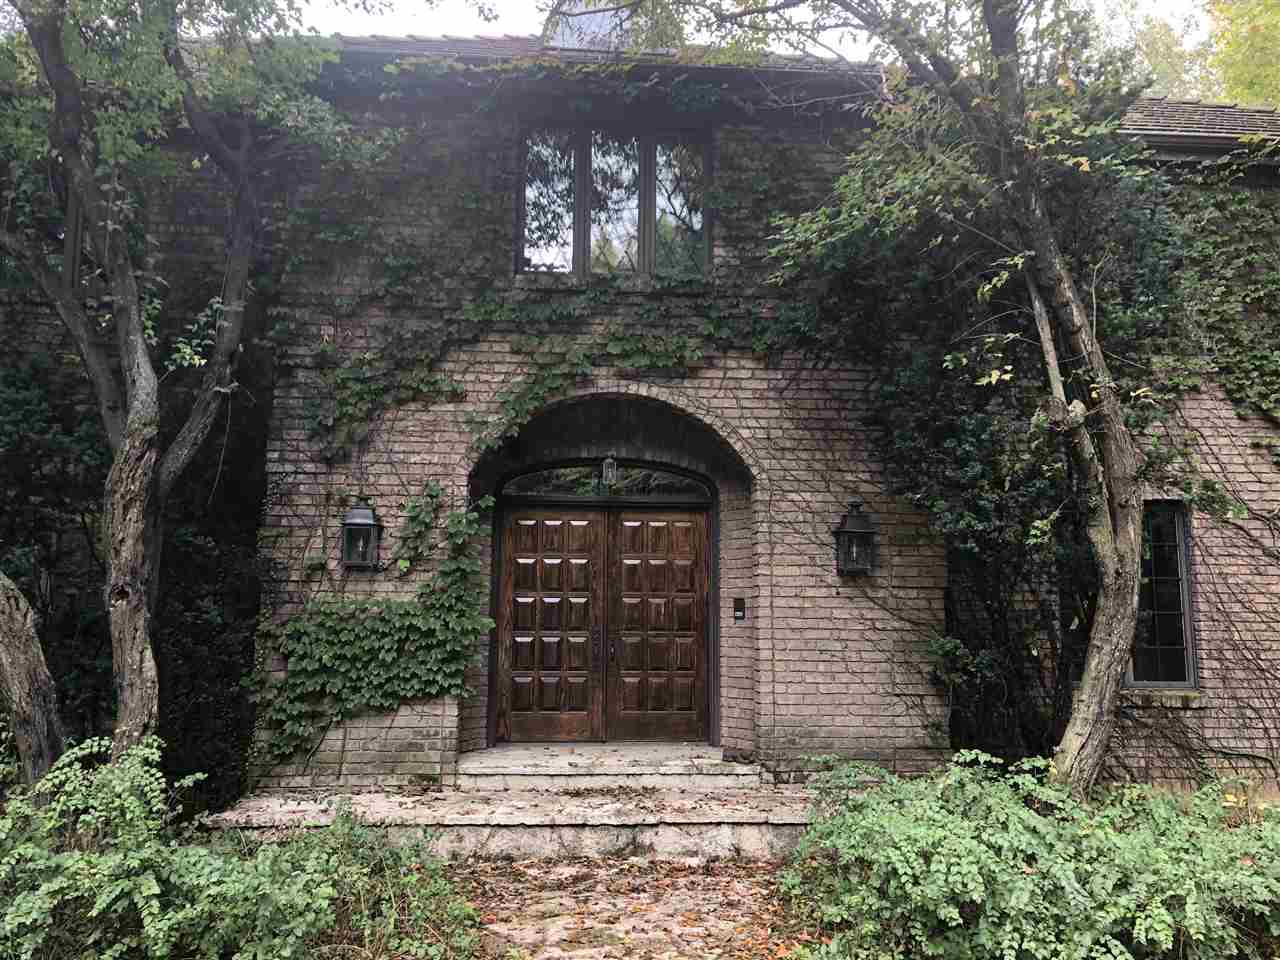 """Imagine a Country Club Lifestyle, Airbnb-Corporate-Spiritual Retreat? Choices?  Recharge on your 8+wooded/open acres. Brick Tudor w/ Tile roof. Wander through magnificent, special, formal and casual rooms, library, tranquil 4 seasons room, volume ceilings, crown moldings, warm cherry paneling, marble, slate and plank teak flooring, 2 FP's, updated kitchen, butlers pantry, wet bar, stained glass. Upstairs, 4 king-size BR suites. FP, Expansive LL:  2 lg entertaining areas,  FP, 2 full baths, endless options w/4 more rooms, access to 3.5 car garage. Old World Charm, own """"Something Truly Special""""!"""